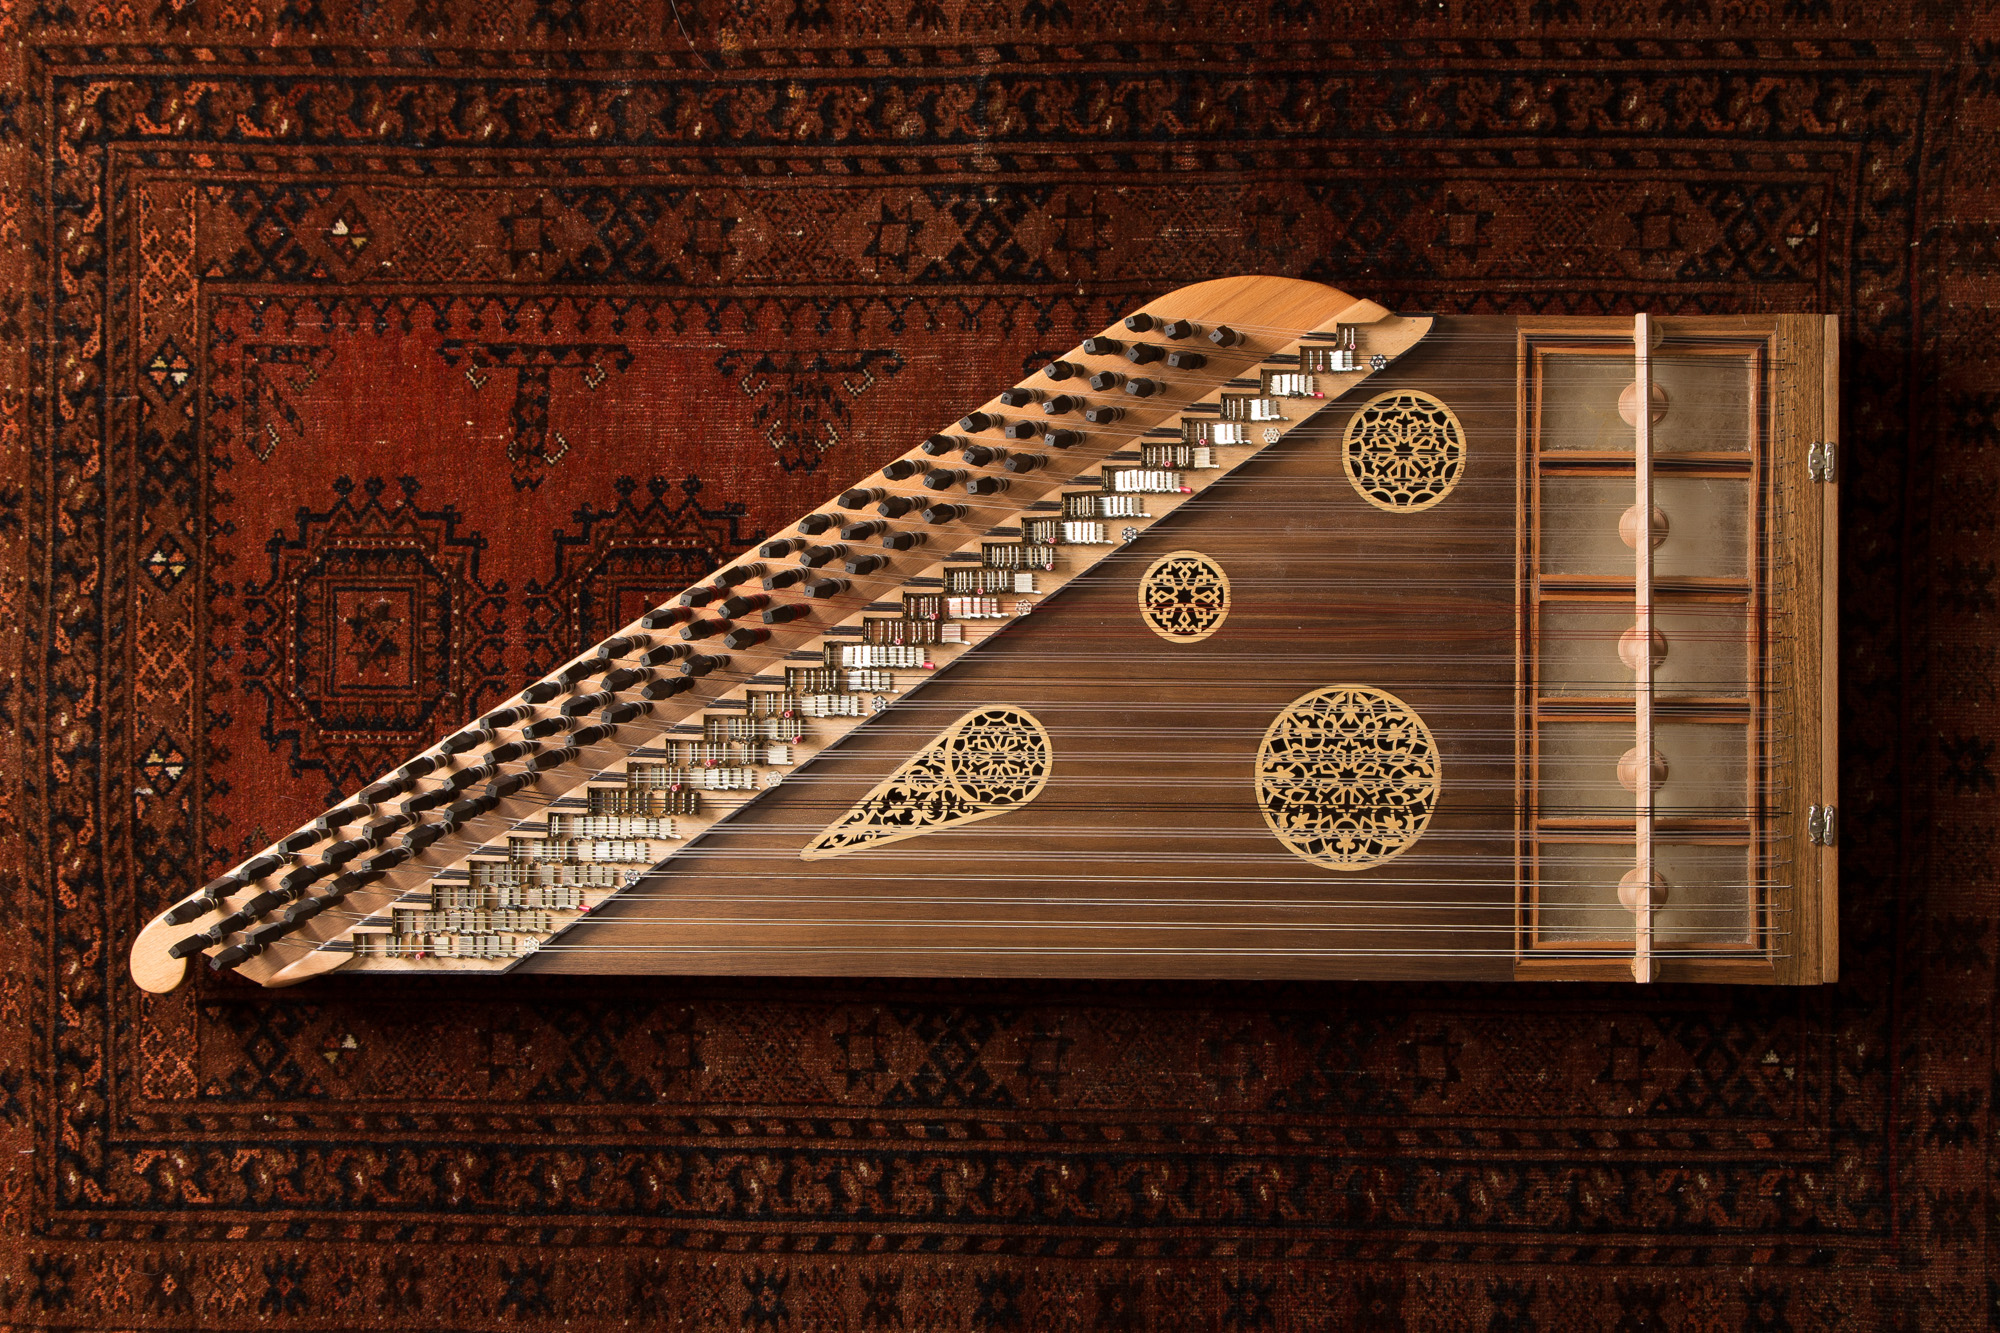 The Qanun — Traditional Arabic Music and Dance